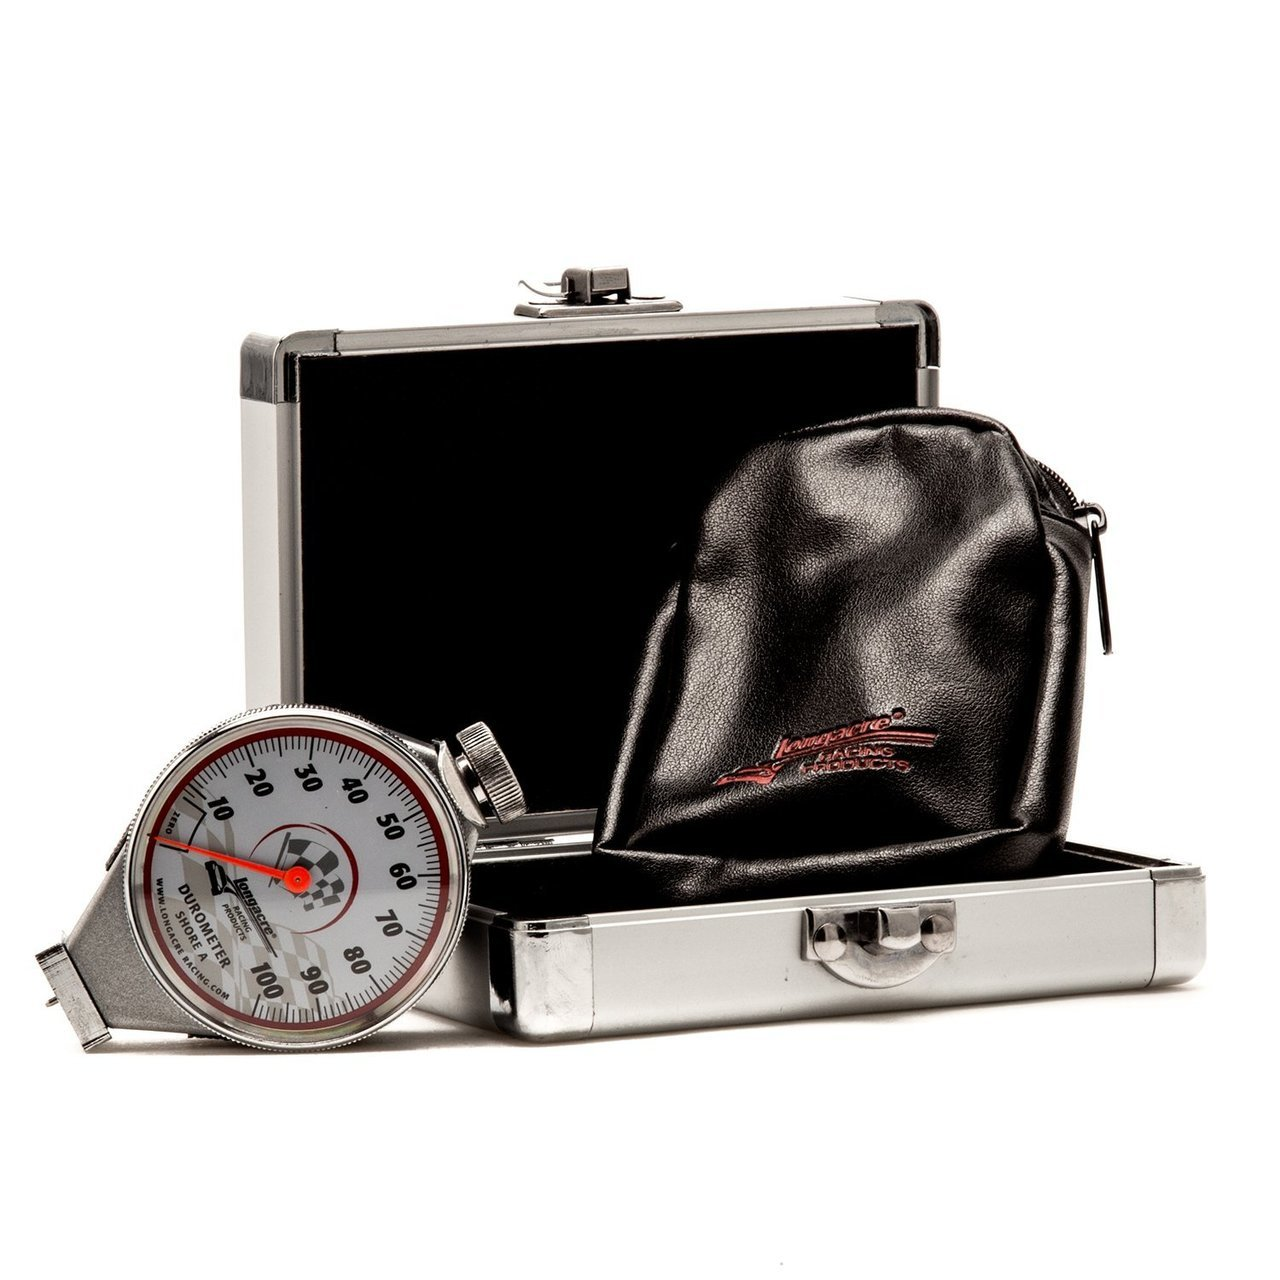 Longacre Deluxe Tire Durometer with Case